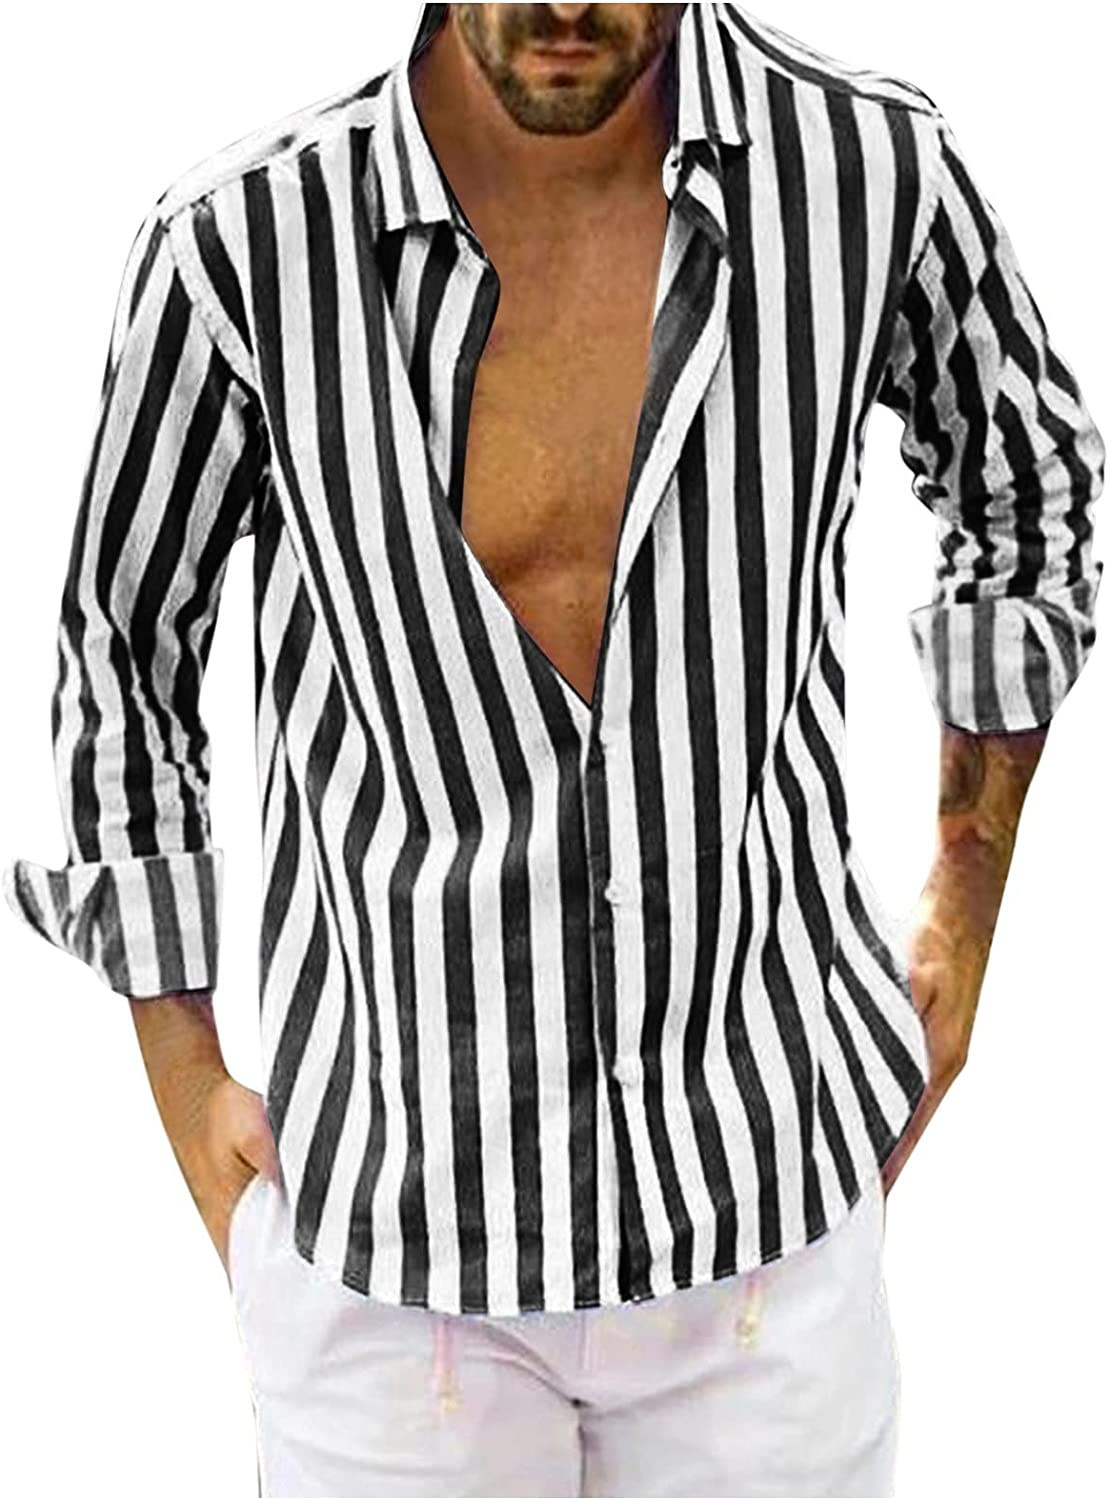 Aayomet Men's Striped Button Down Shirts Casual Long Sleeve T-Shirt Loose Daily Workout Yoga Sport Beach Tee Shirts Tops